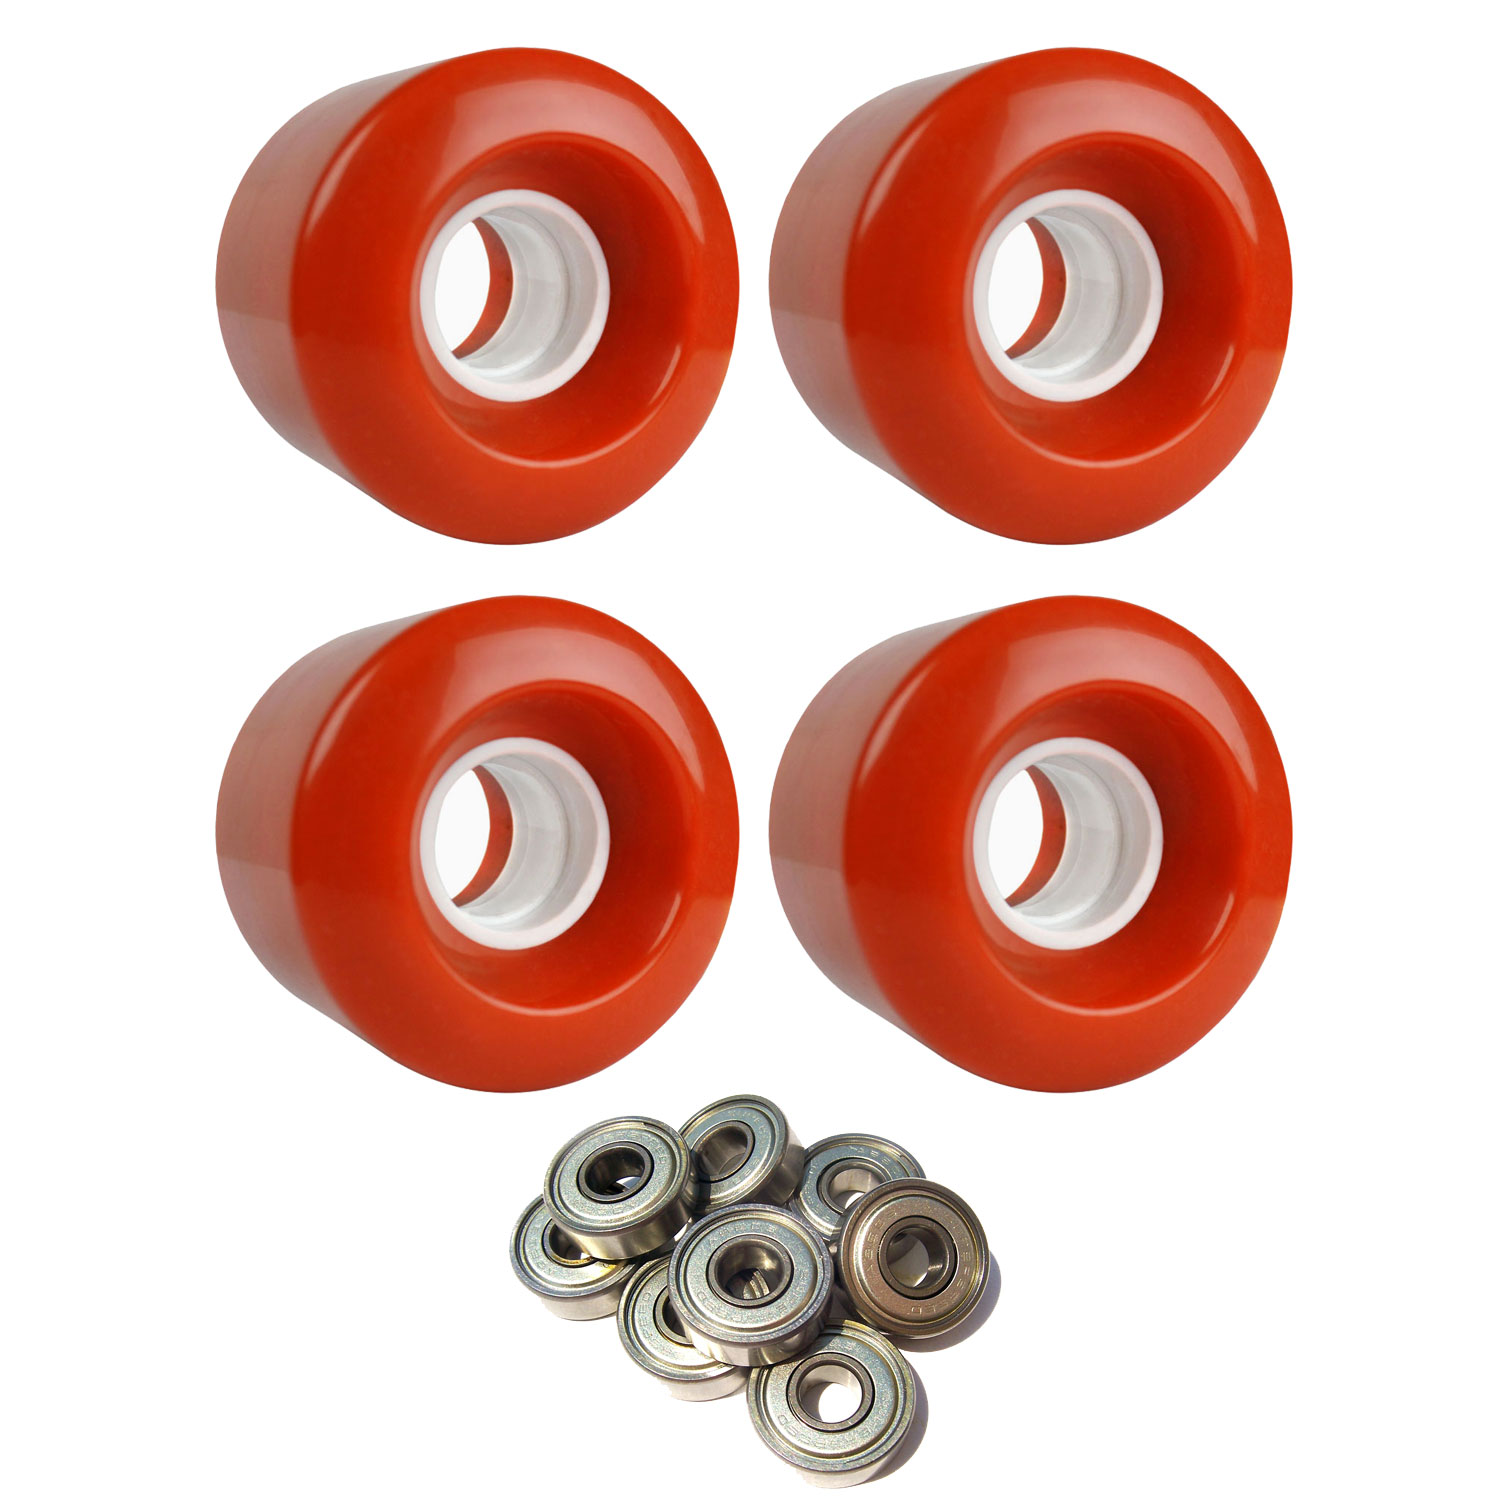 LONGBOARD CRUISER WHEELS 60mm x 47mm 83A 180C Orange ABEC 7 BEARINGS